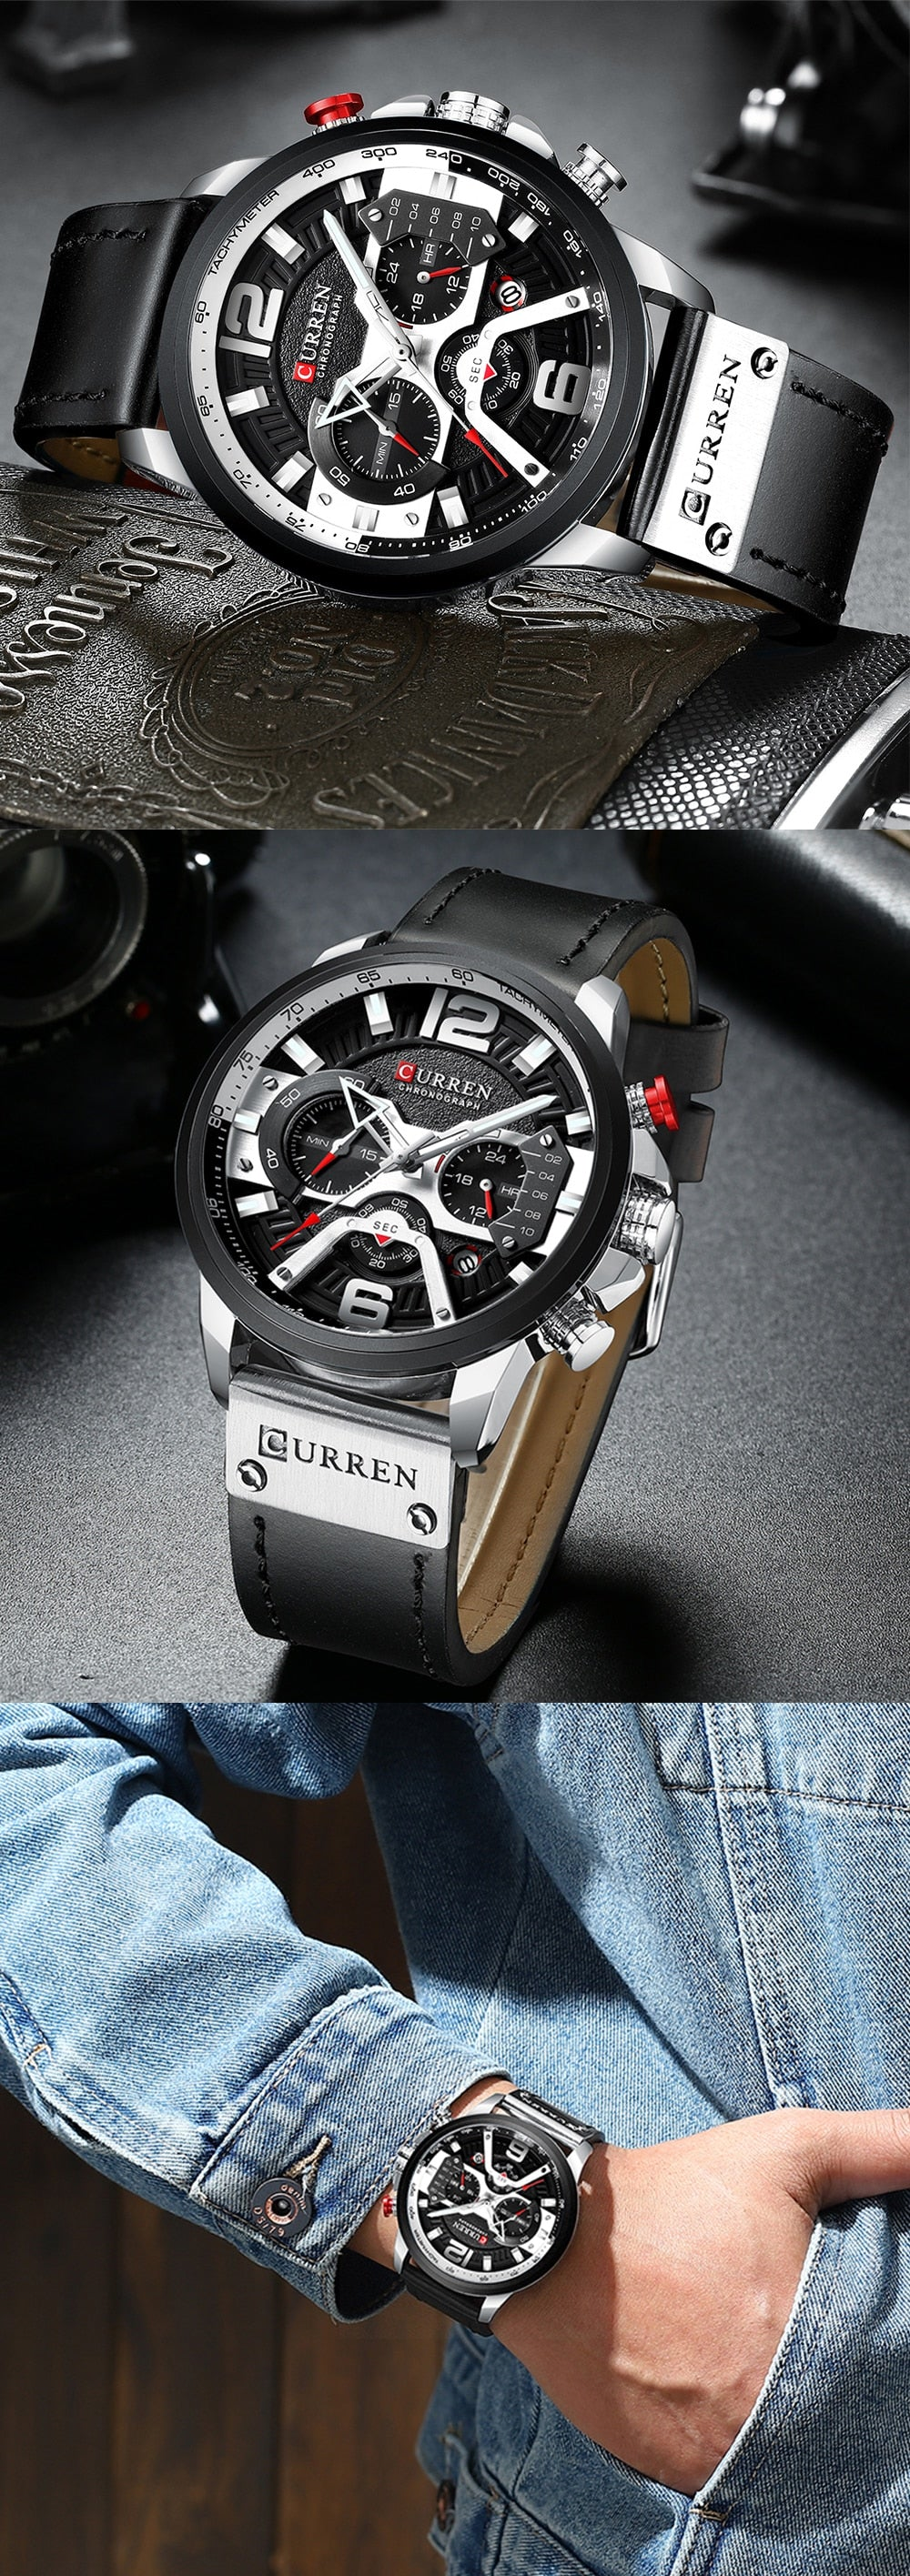 CURREN Watches for Men Blue Top Brand Luxury Military Leather Wrist